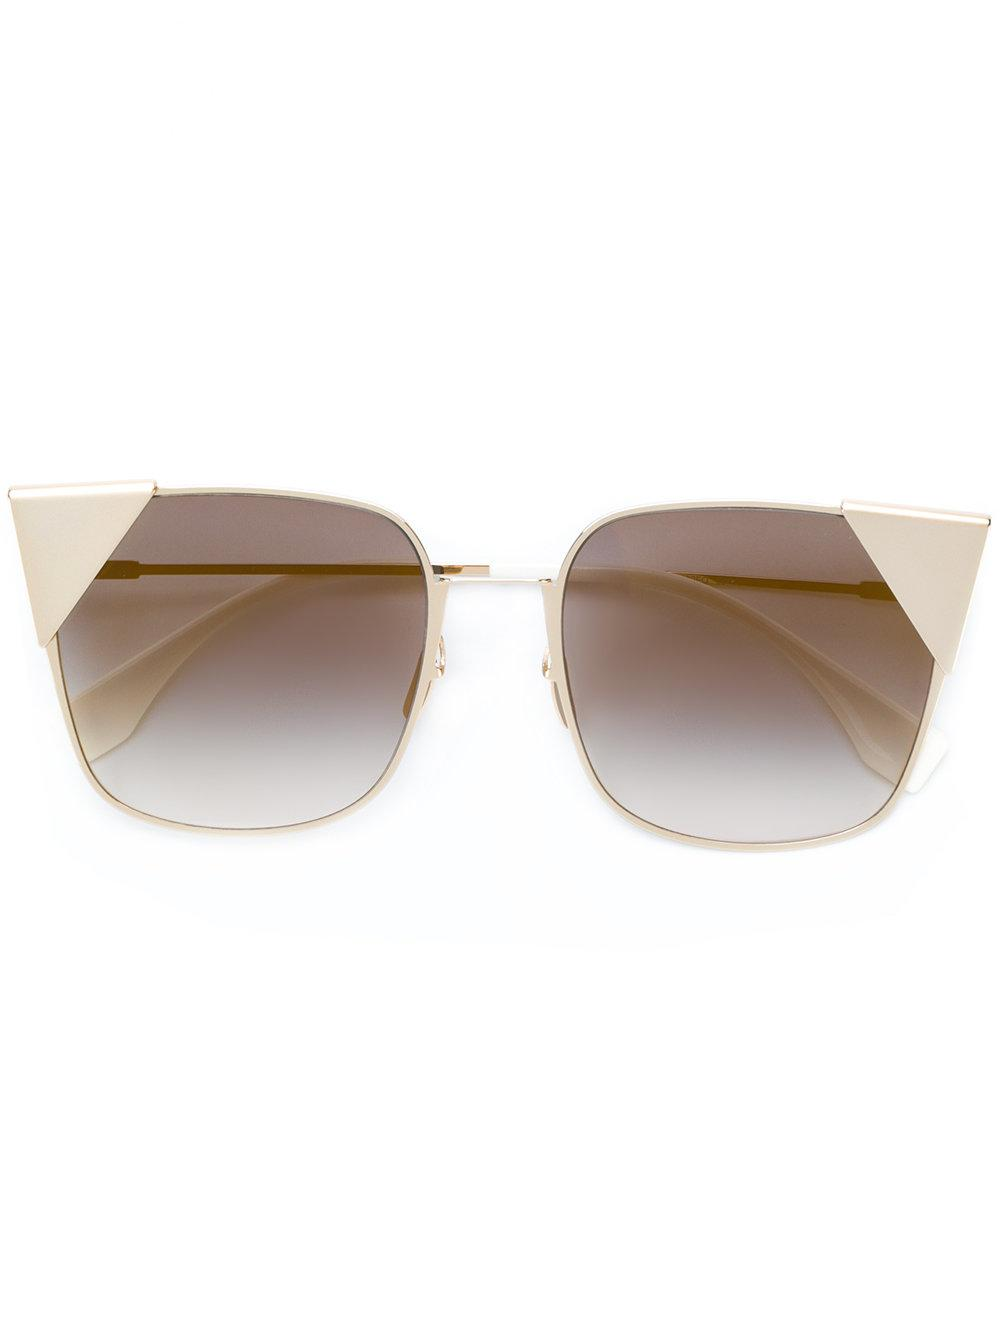 fb882ad7c8eac Fendi Eyewear Lei Sunglasses - Farfetch In 000Fq